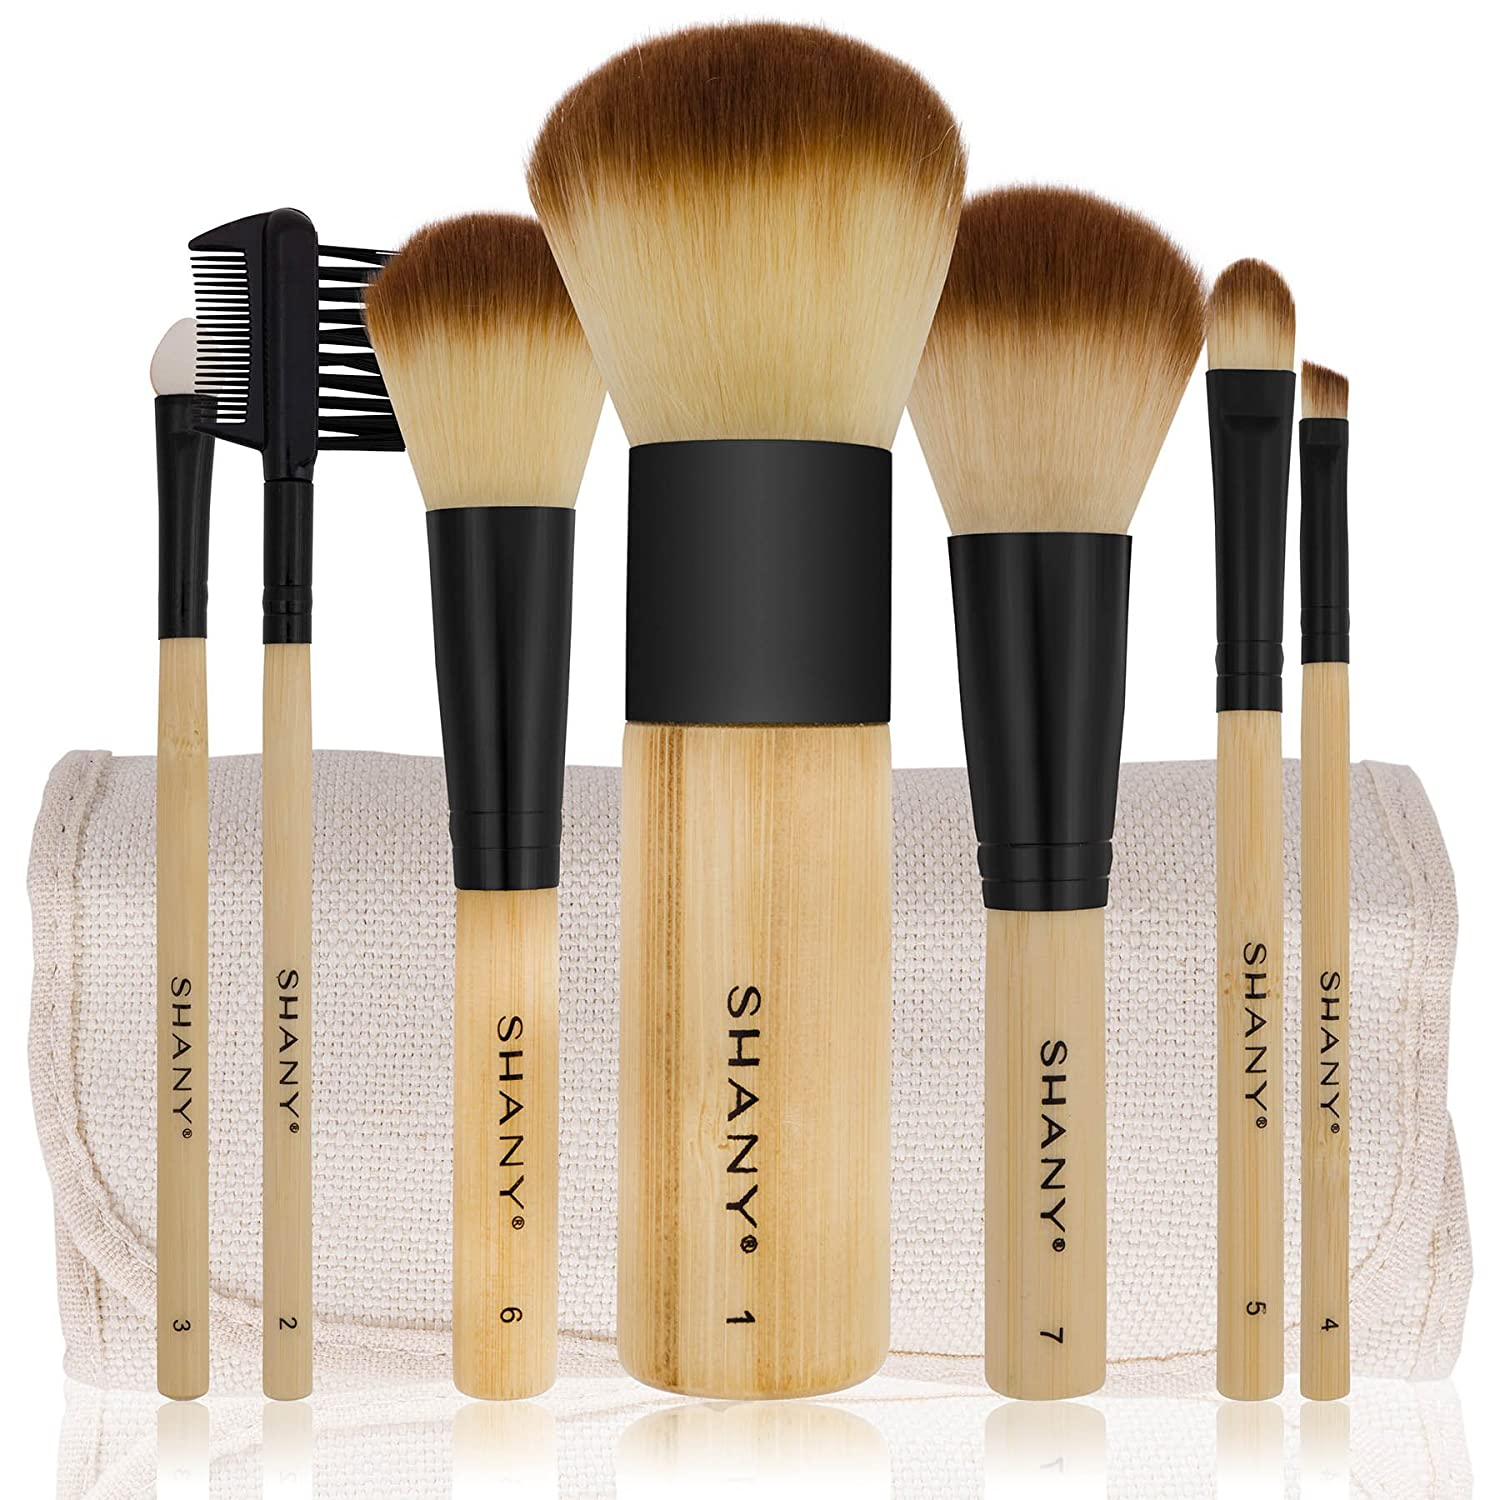 Shany Bamboo Brush Set With Premium Synthetic Hair, Handles And